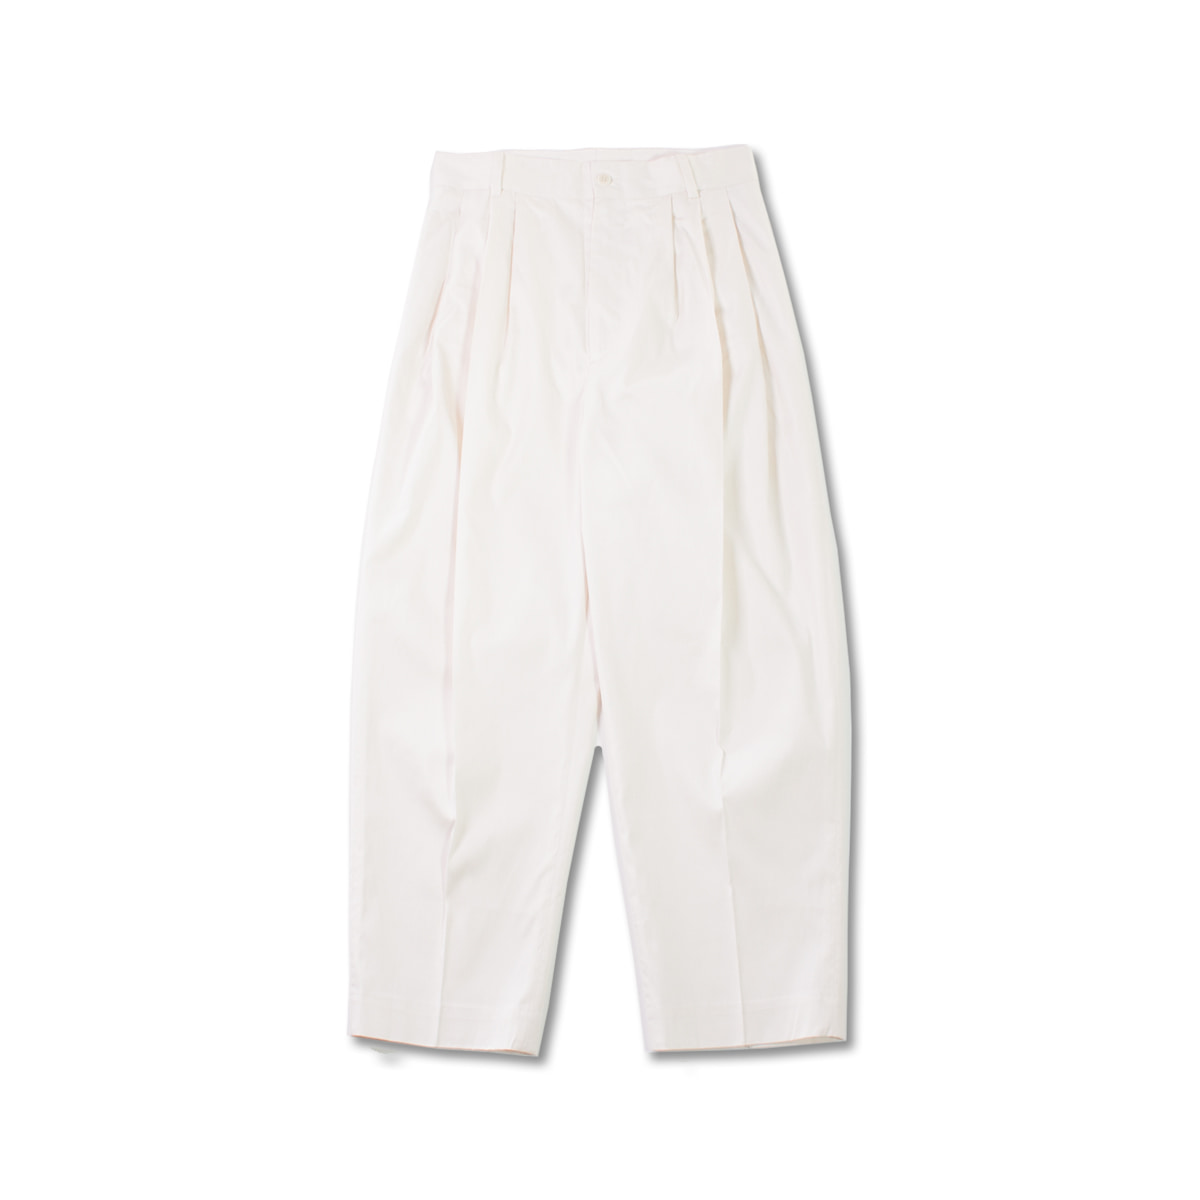 [HED MAYNER] 4 PLEAT PANTS 'WHITE ON WHITE'